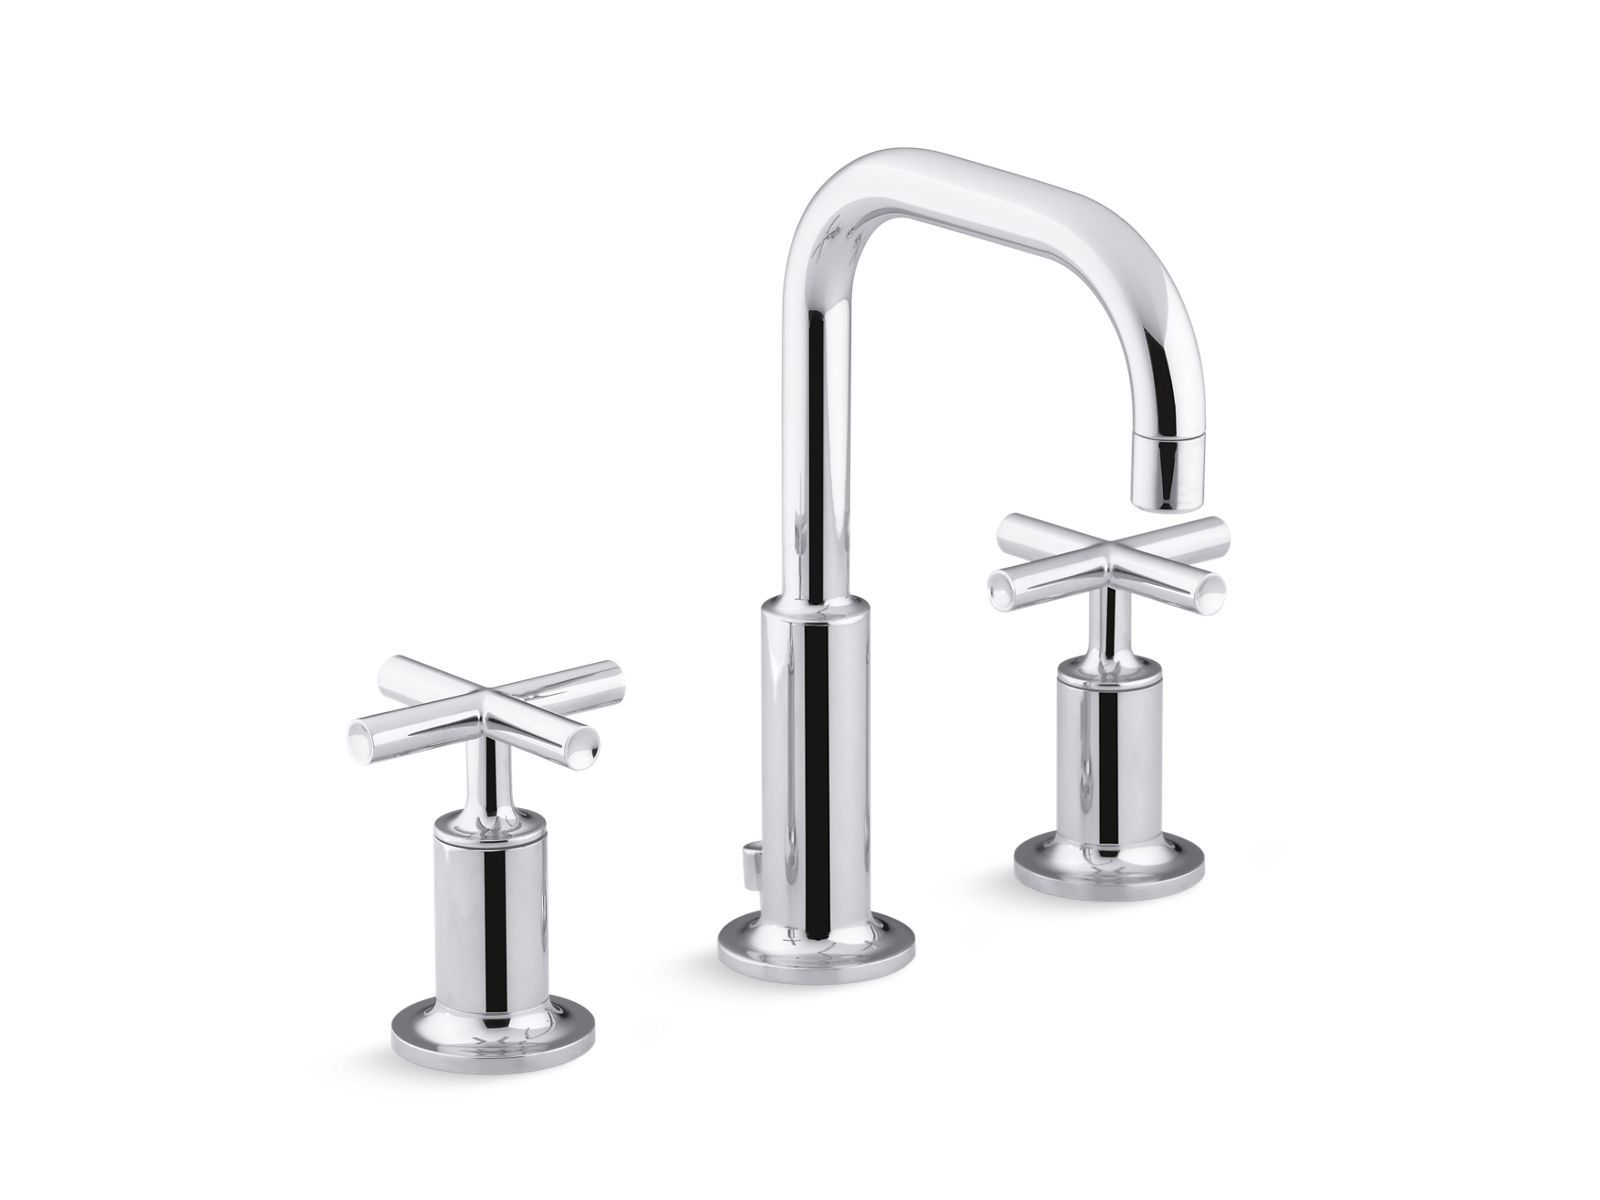 Purist Widespread Sink Faucet With Low Cross Handles K 14406 3 Kohler With Images Sink Faucets Widespread Bathroom Faucet Bathroom Faucets